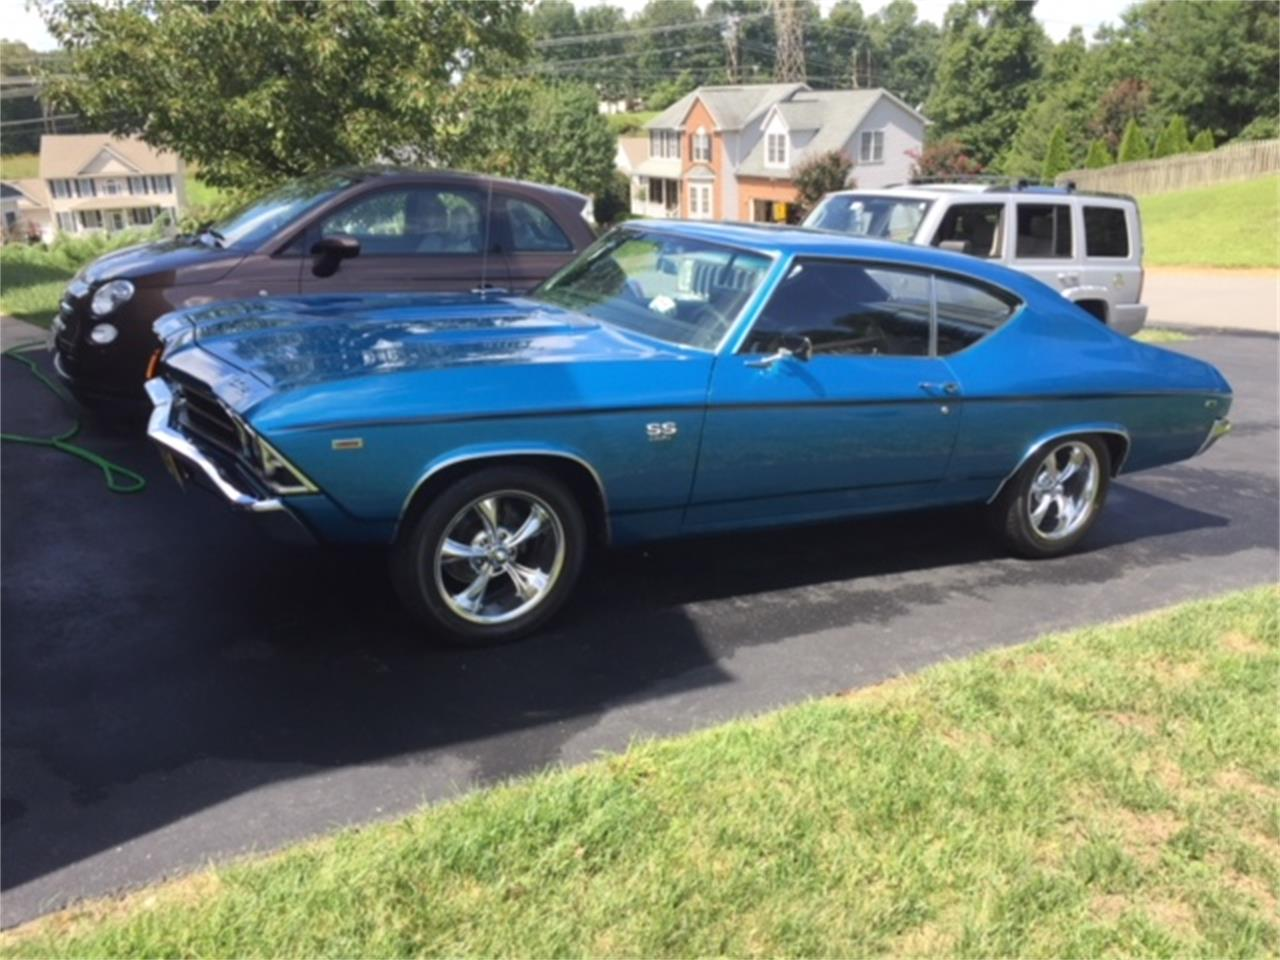 Large Picture of Classic 1969 Chevelle SS located in Virginia - $39,500.00 Offered by a Private Seller - OJ20